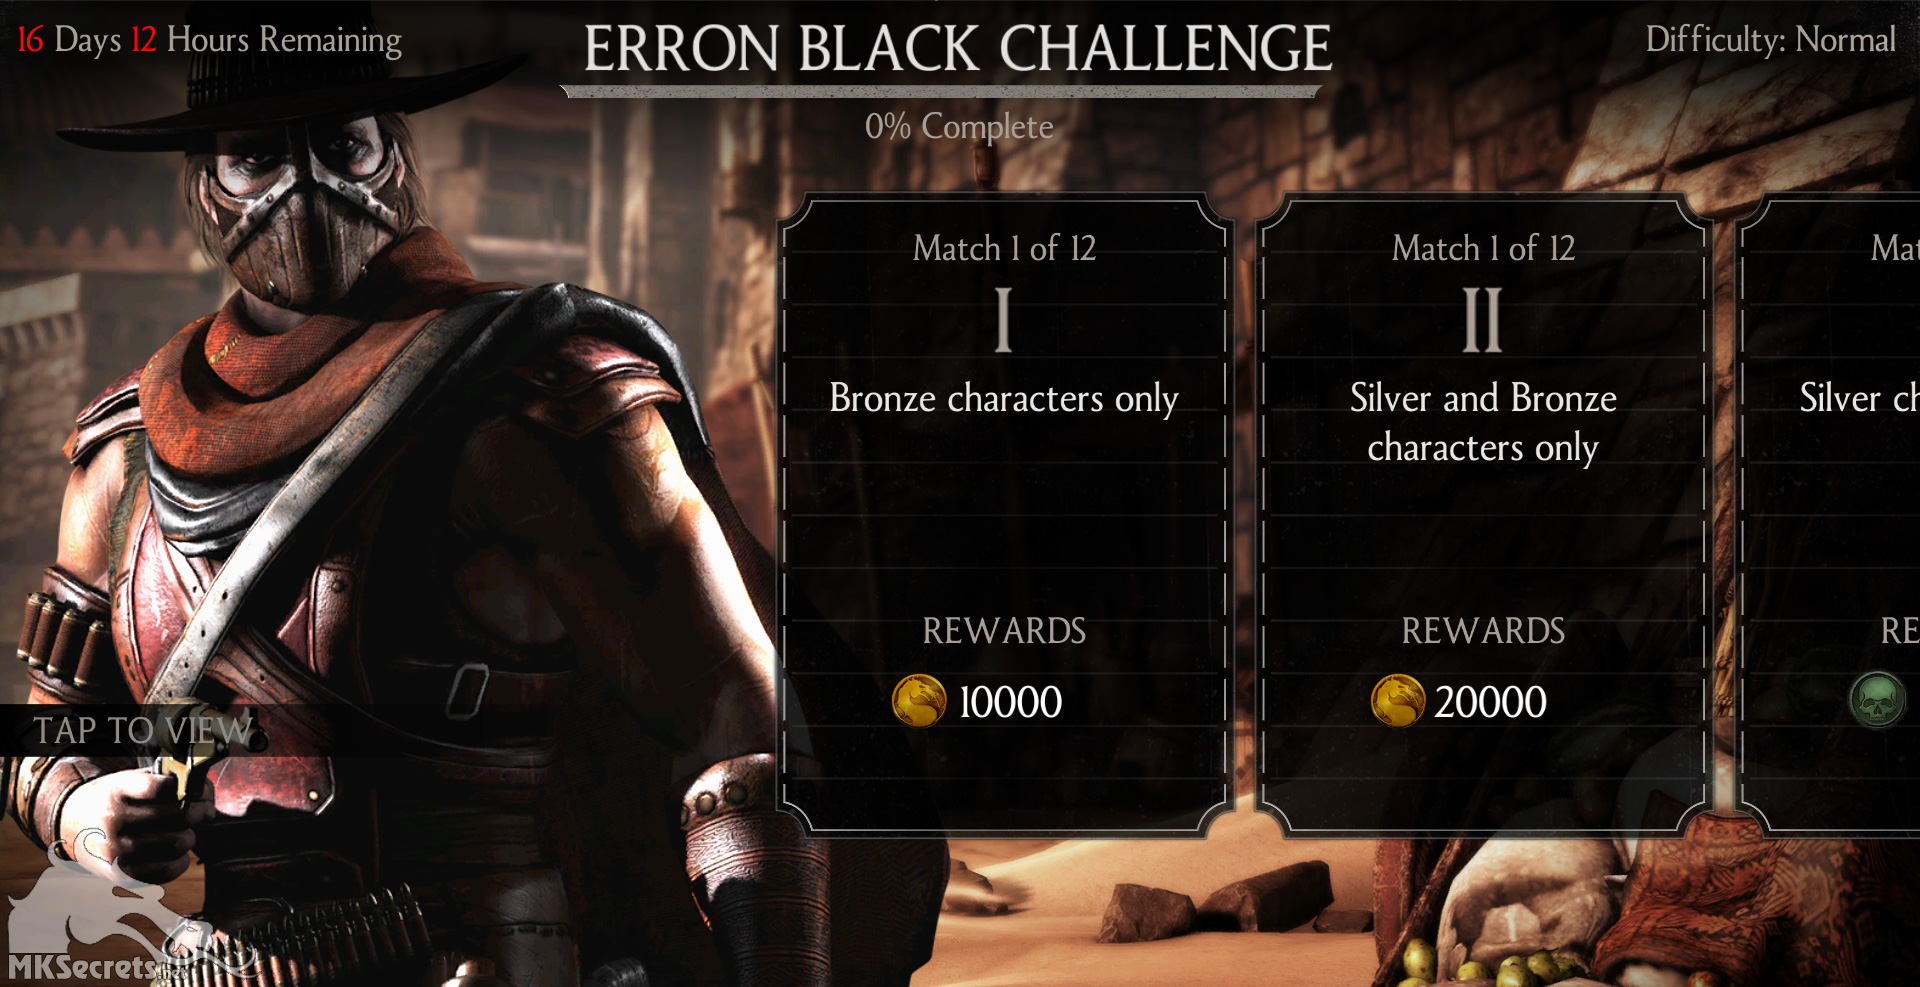 Mortal Kombat X Mobile Gunslinger Erron Black Challenge